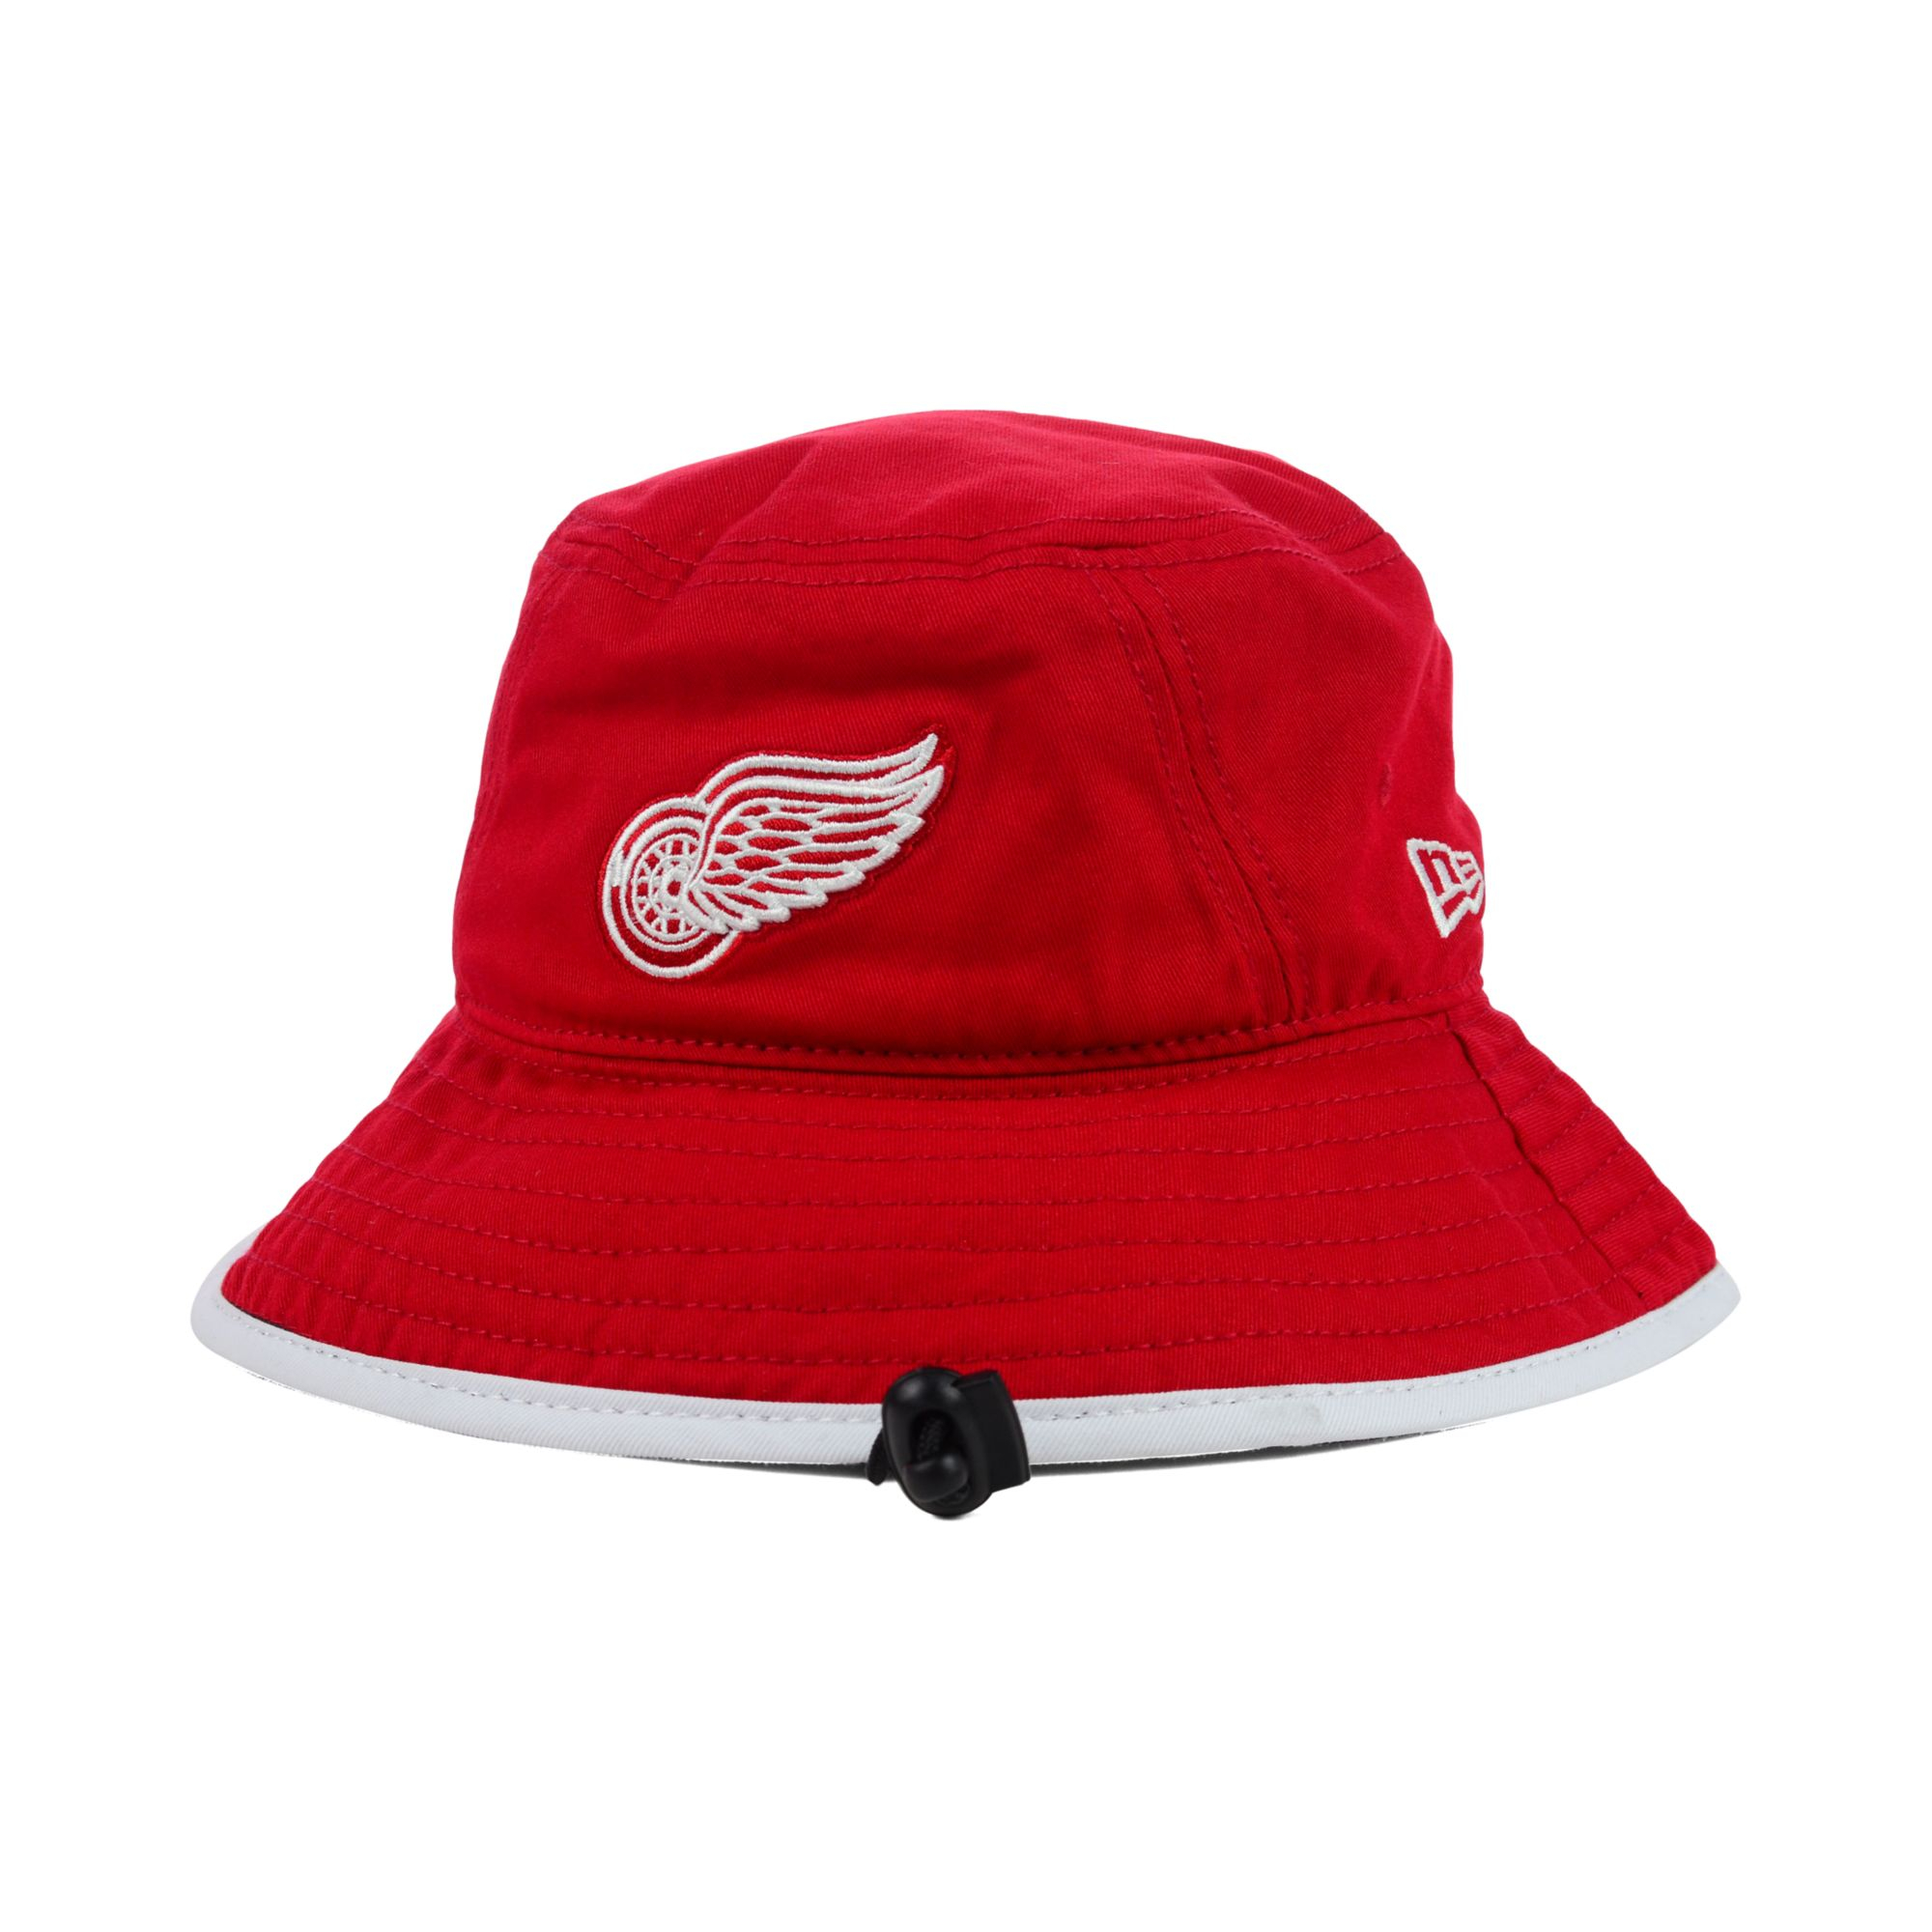 best service f059d cab0d ... closeout lyst ktz detroit red wings basic tipped bucket hat in red for  men bfdf8 c9c1f